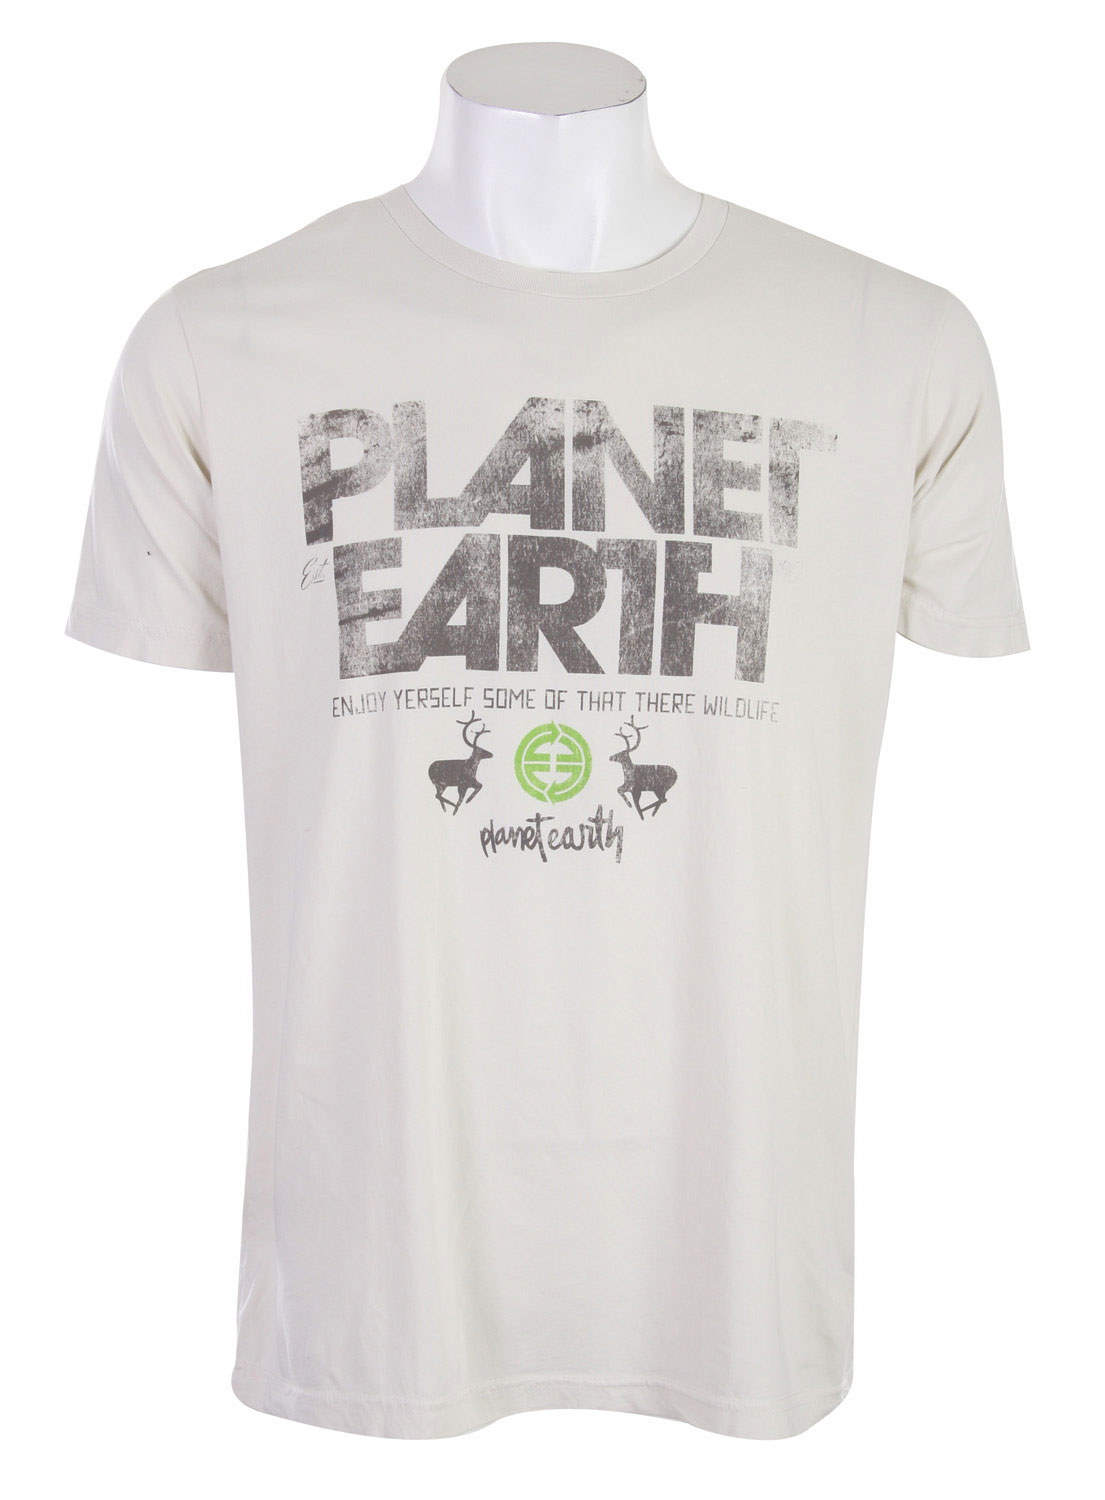 Hunting Would you call yourself a nature enthusiast  Well if you love the great out doors and all that they have to offer, then this  Planet Earth Newman T-Shirt is just the shirt for you. It offers a great design on the front that says Planet earth and then has some nice looking elk. The design isn't flashy at all, it has a more laid back feel to it. It's got an all around natural look to the shirt so you will feel right at home. The shirt is made out of some extremely comfortable material that will have you wanting to sleep in this product. There's nothing better then looking good and being comfortable at the same time.Key Features of the Planet Earth Newman T-Shirt Natural White:  100% Organic Cotton - $11.95